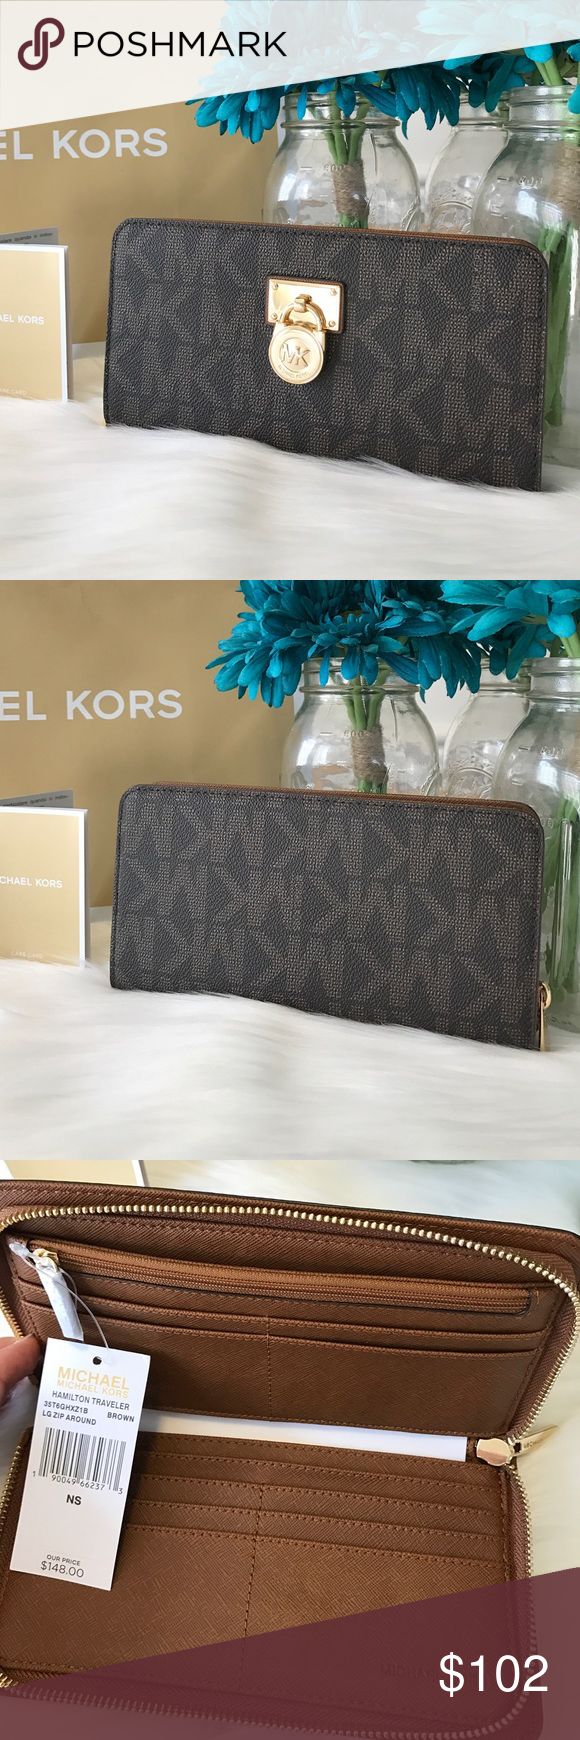 """🆕 Michael Kors Wallet Hamilton Large Zip Around Brand New 100% Authentic  MK Michael Kors Hamilton Traveler Wallet Large Zip Around brown/ Luggage  Made of logo MK PVC with leather trim and LOCK detail on front Style:35T6GHXZ1B ✨Retail price $148  ✨Zip around for closure ✨Inside features 12 credit card slots. ✨3 full length bill compartments ✨Full leather & Signature fabric lining ✨Gold hardware ✨Dimensions :8.10""""(L) x 4.35""""(H) x 1""""(D)  Check out my closet Cuala❤️◡̈ MICHAEL Michael Kors…"""